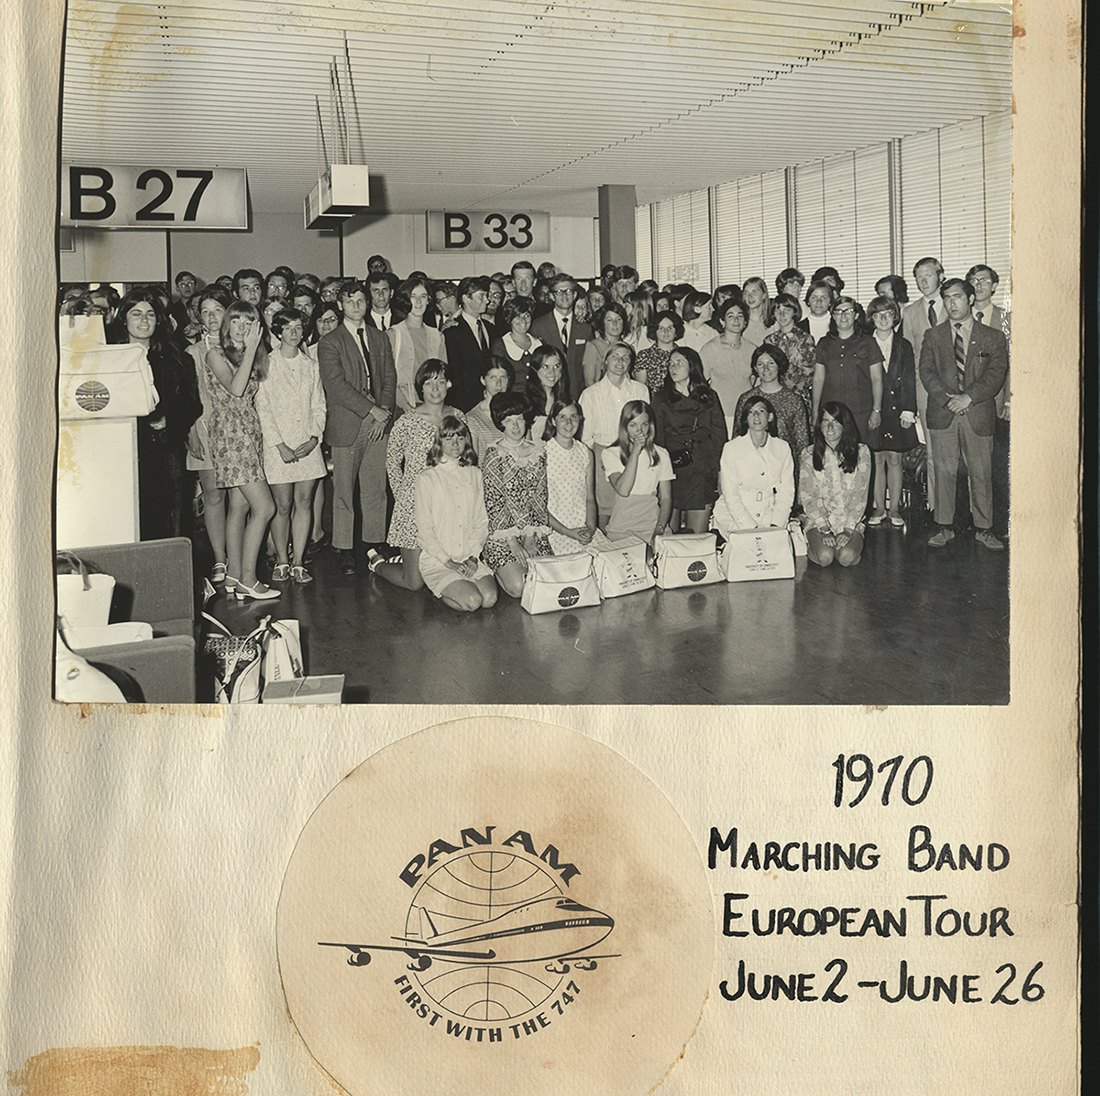 UConn Marching Band at the airport for the 1970 European tour, from the 1970 Scrapbook